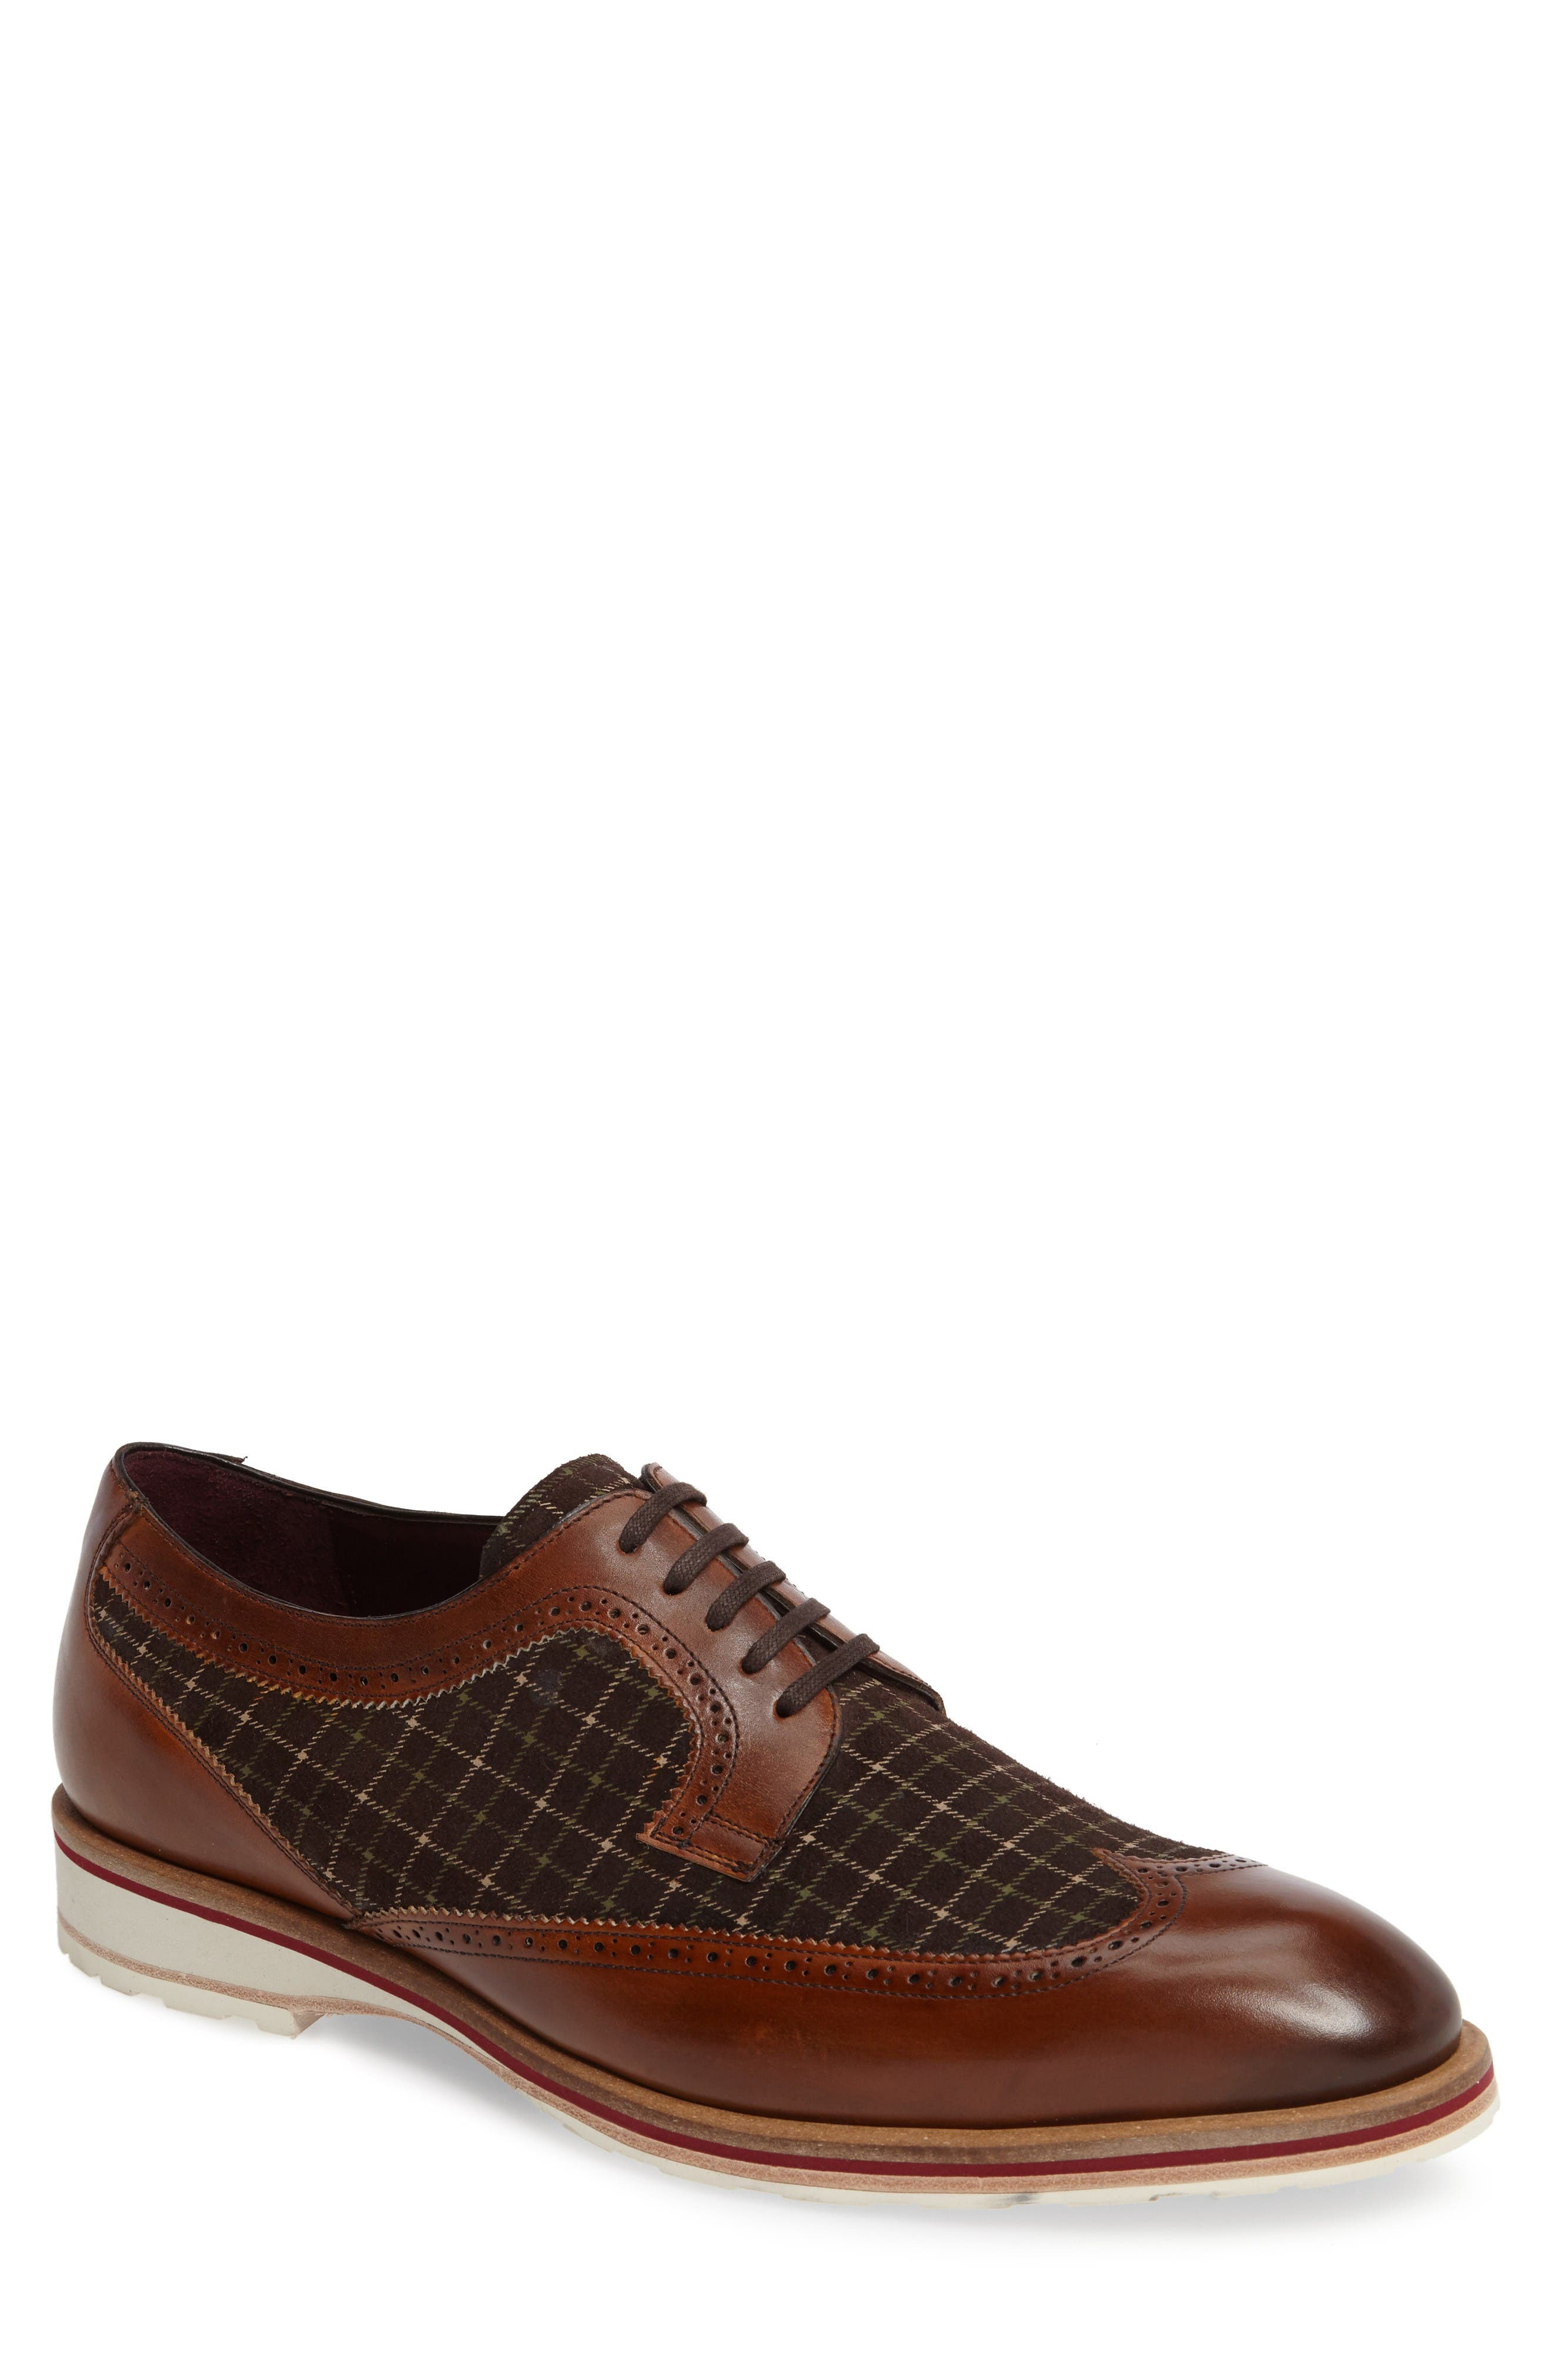 Paulov Tattersall Wingtip,                             Main thumbnail 1, color,                             Cognac/ Brown Leather